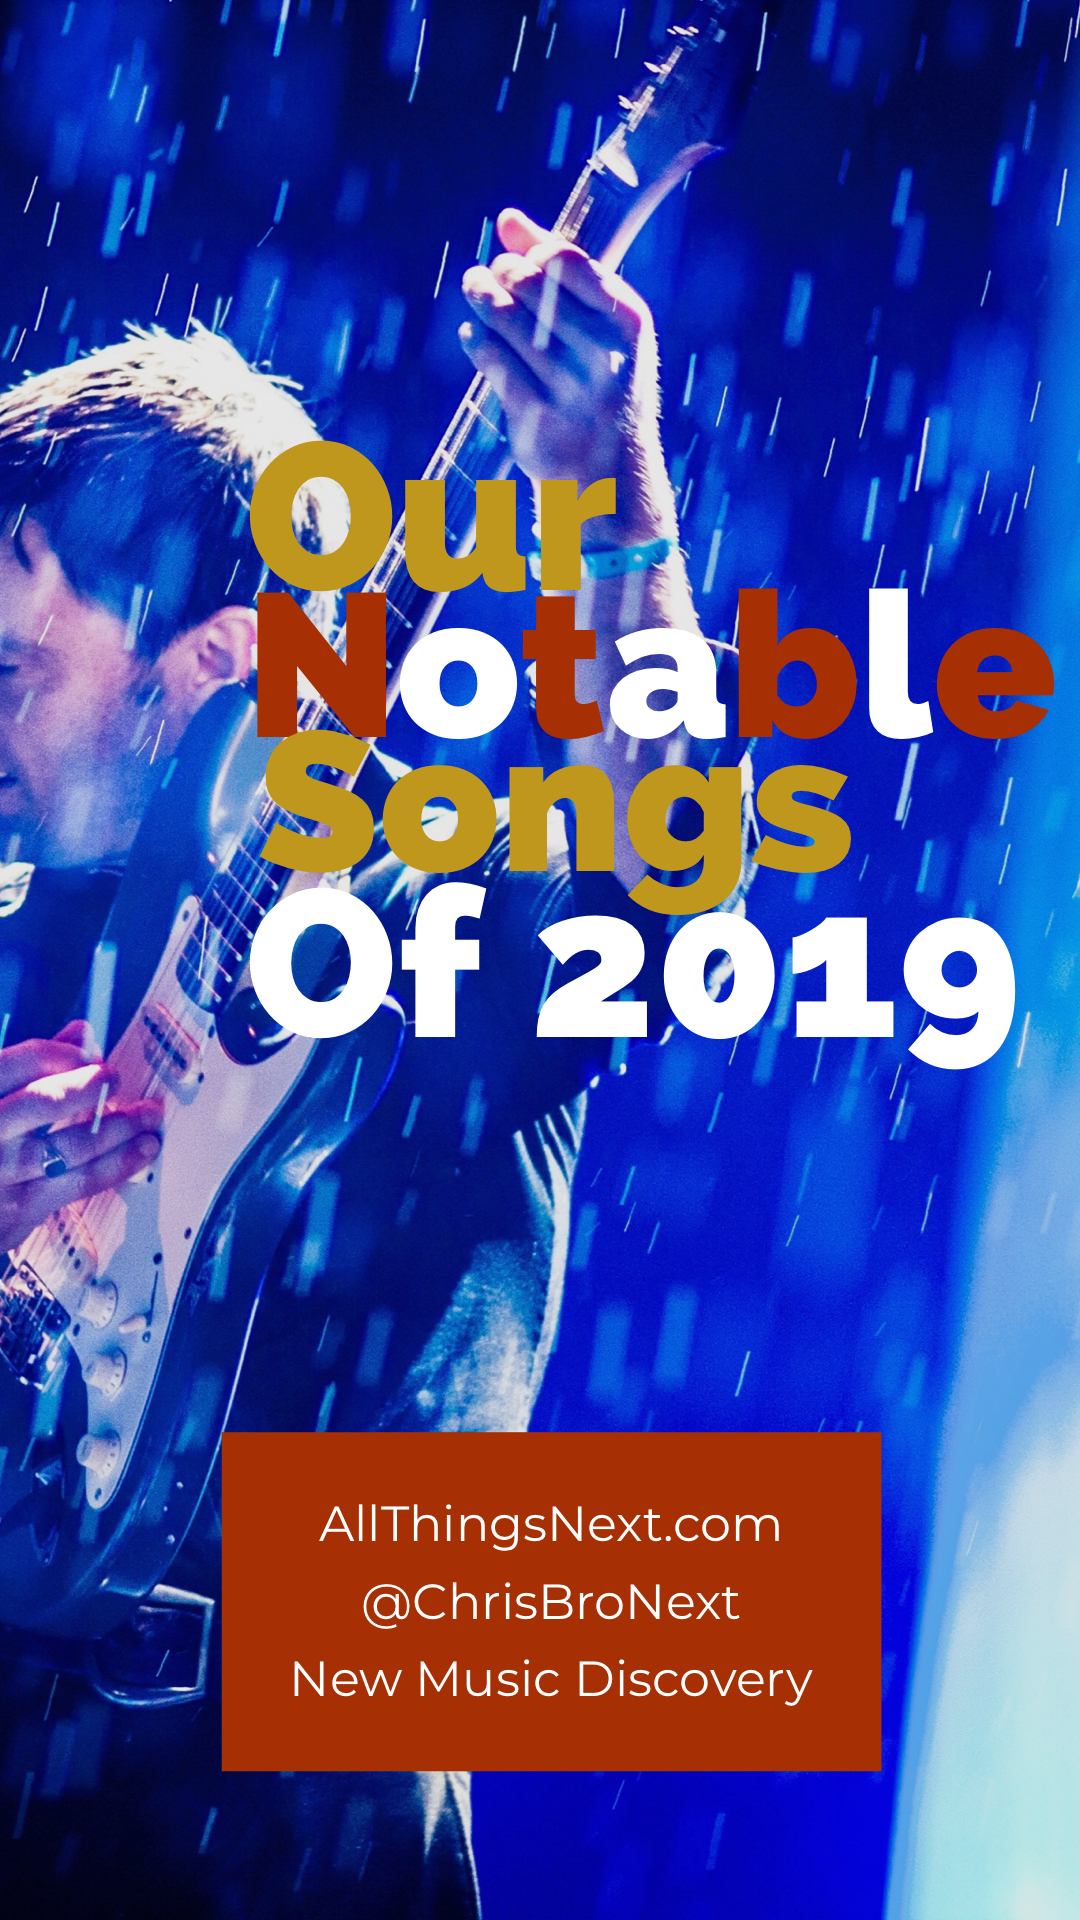 Next Week 712 Week 1 of 4 of Our Notable Songs of 2019